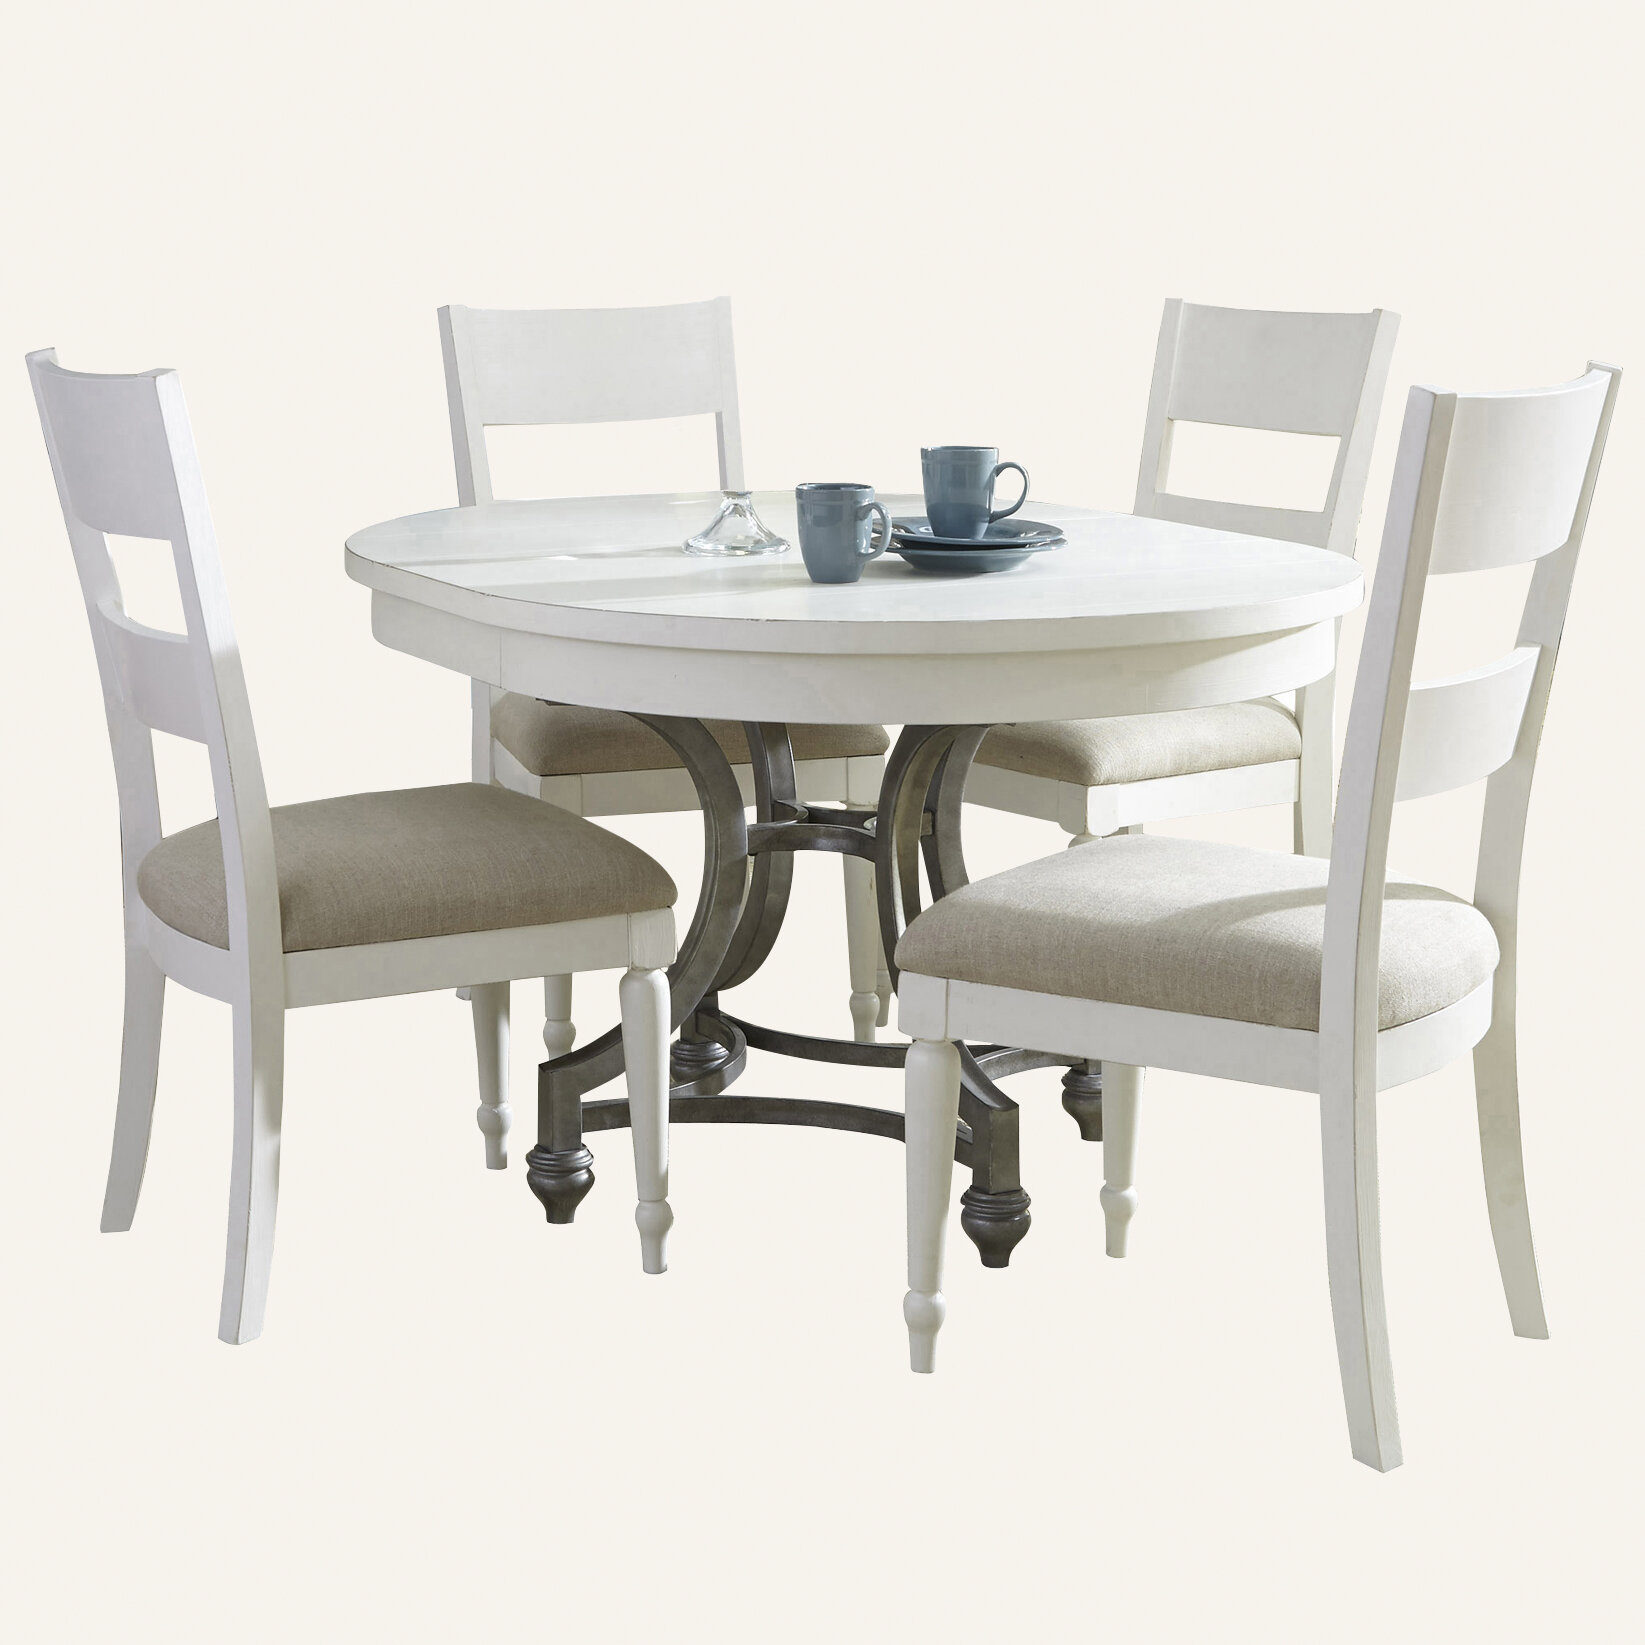 White Dining Table Set Visualhunt, White Dining Room Sets